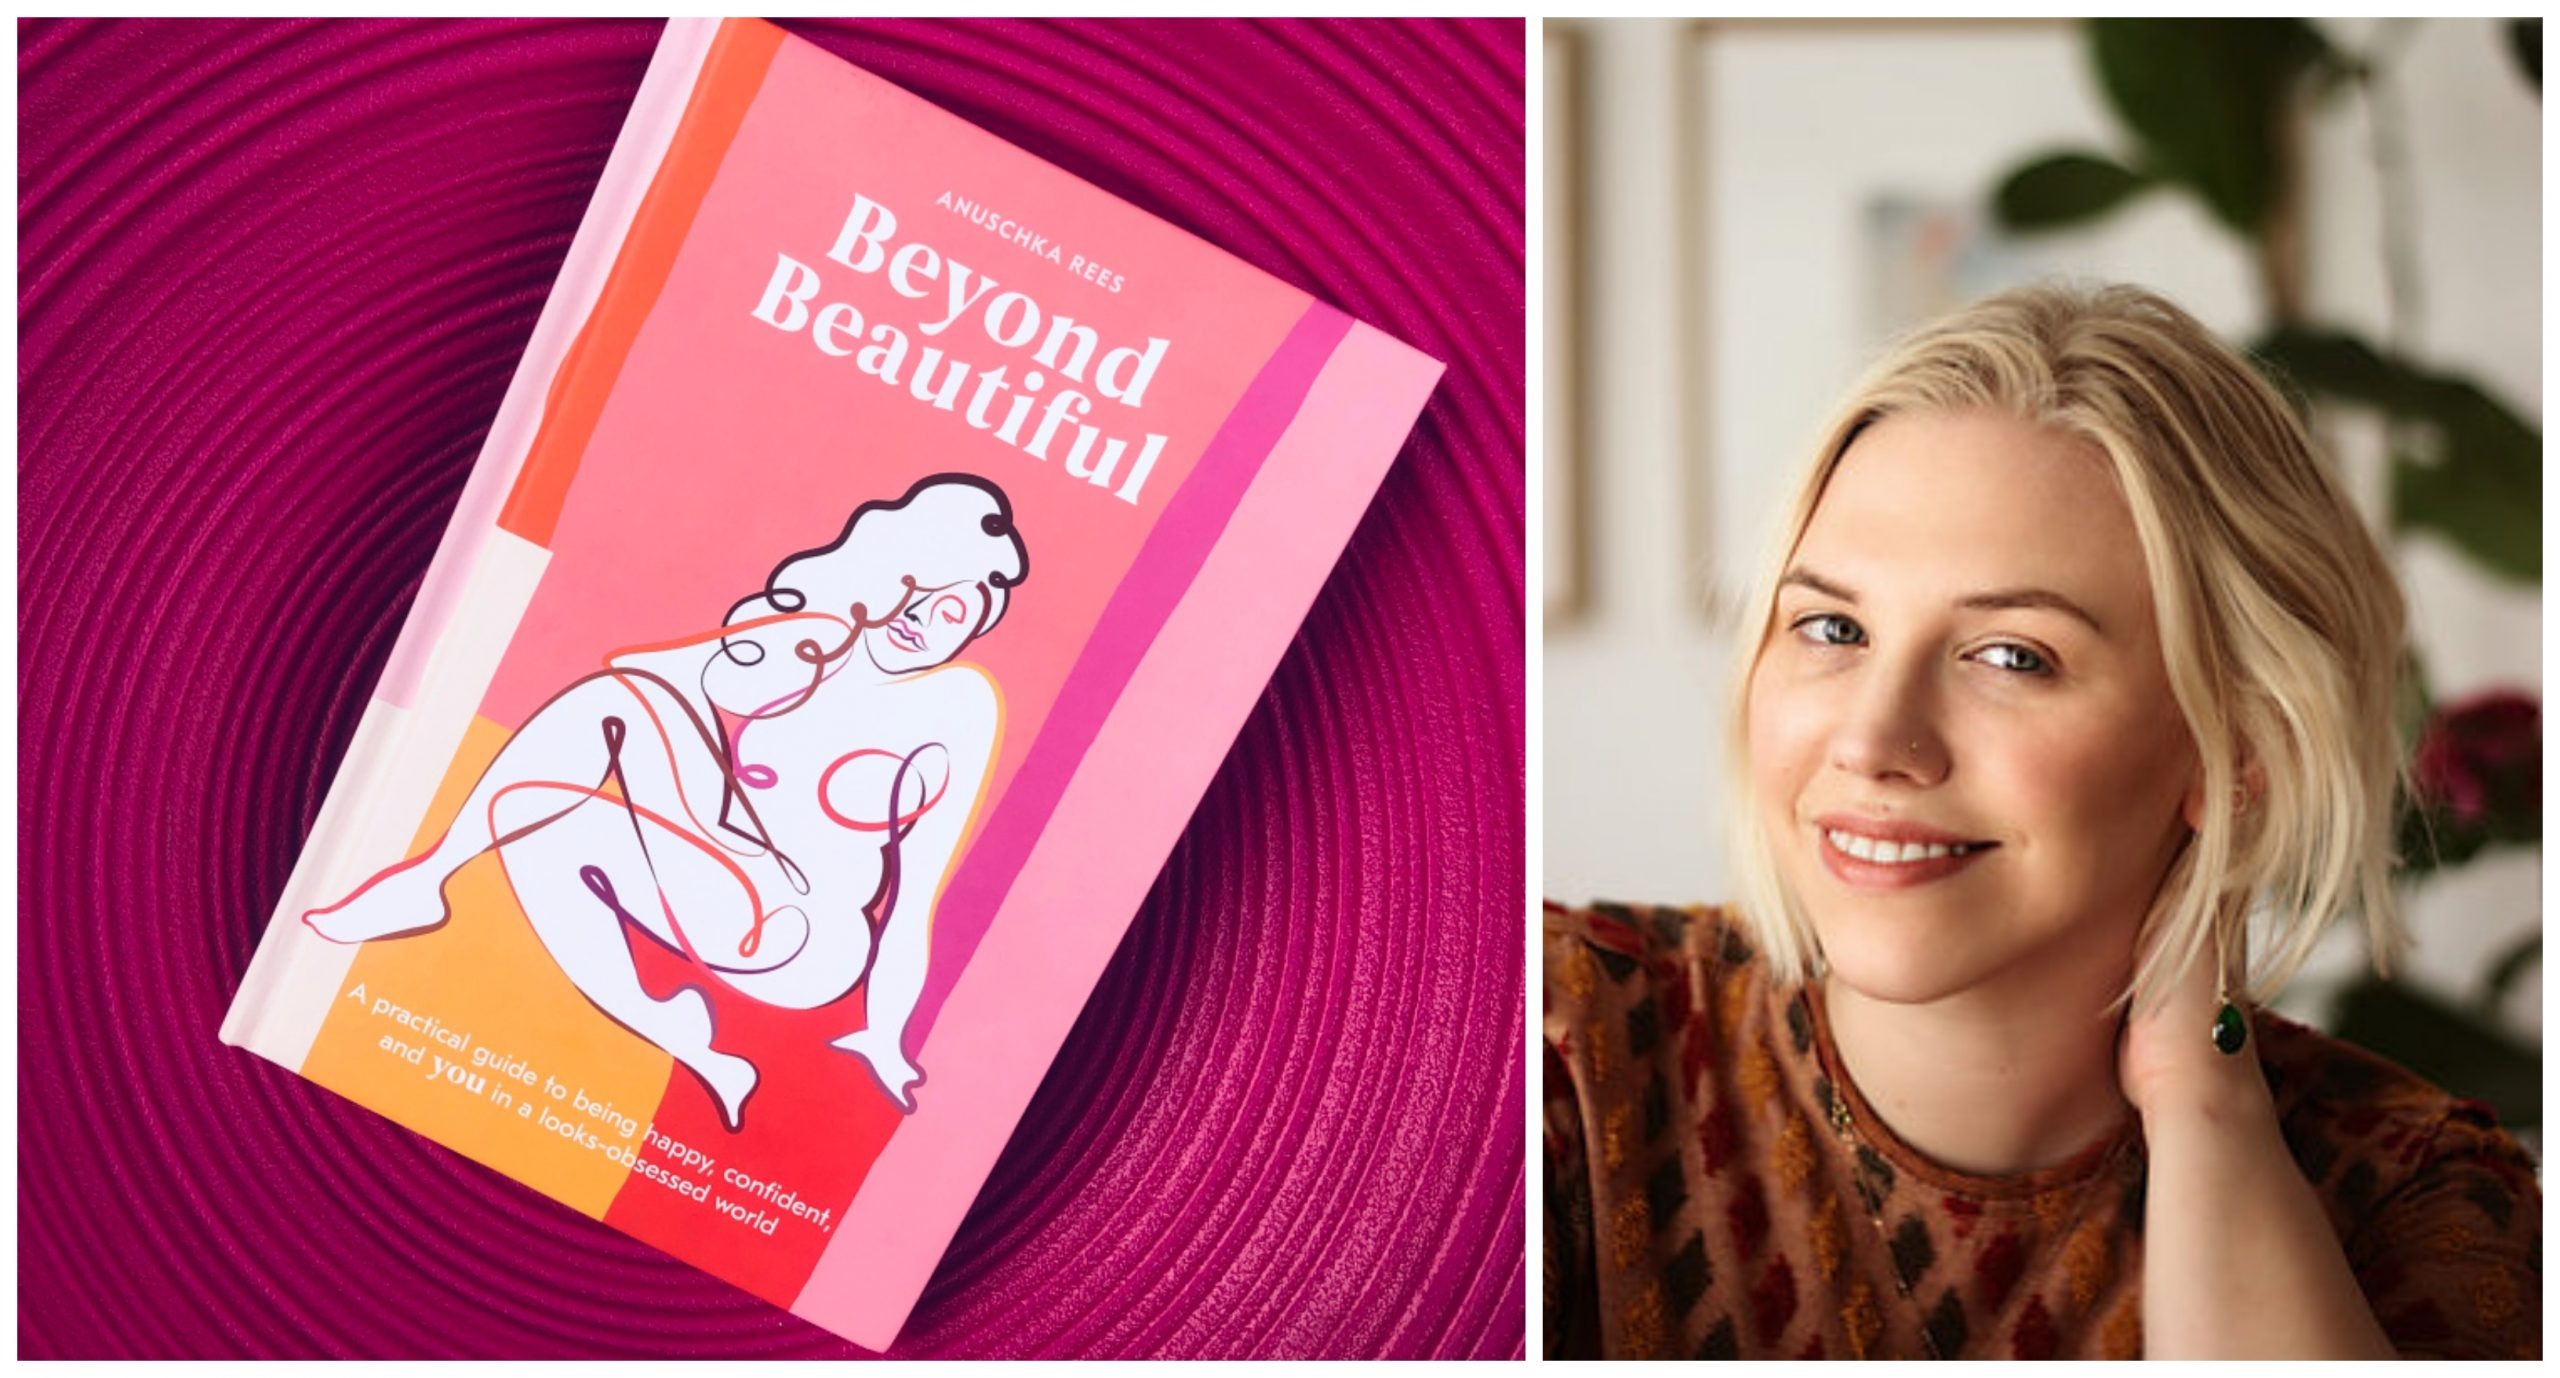 Book Review: Beyond Beautiful By Anuschka Rees